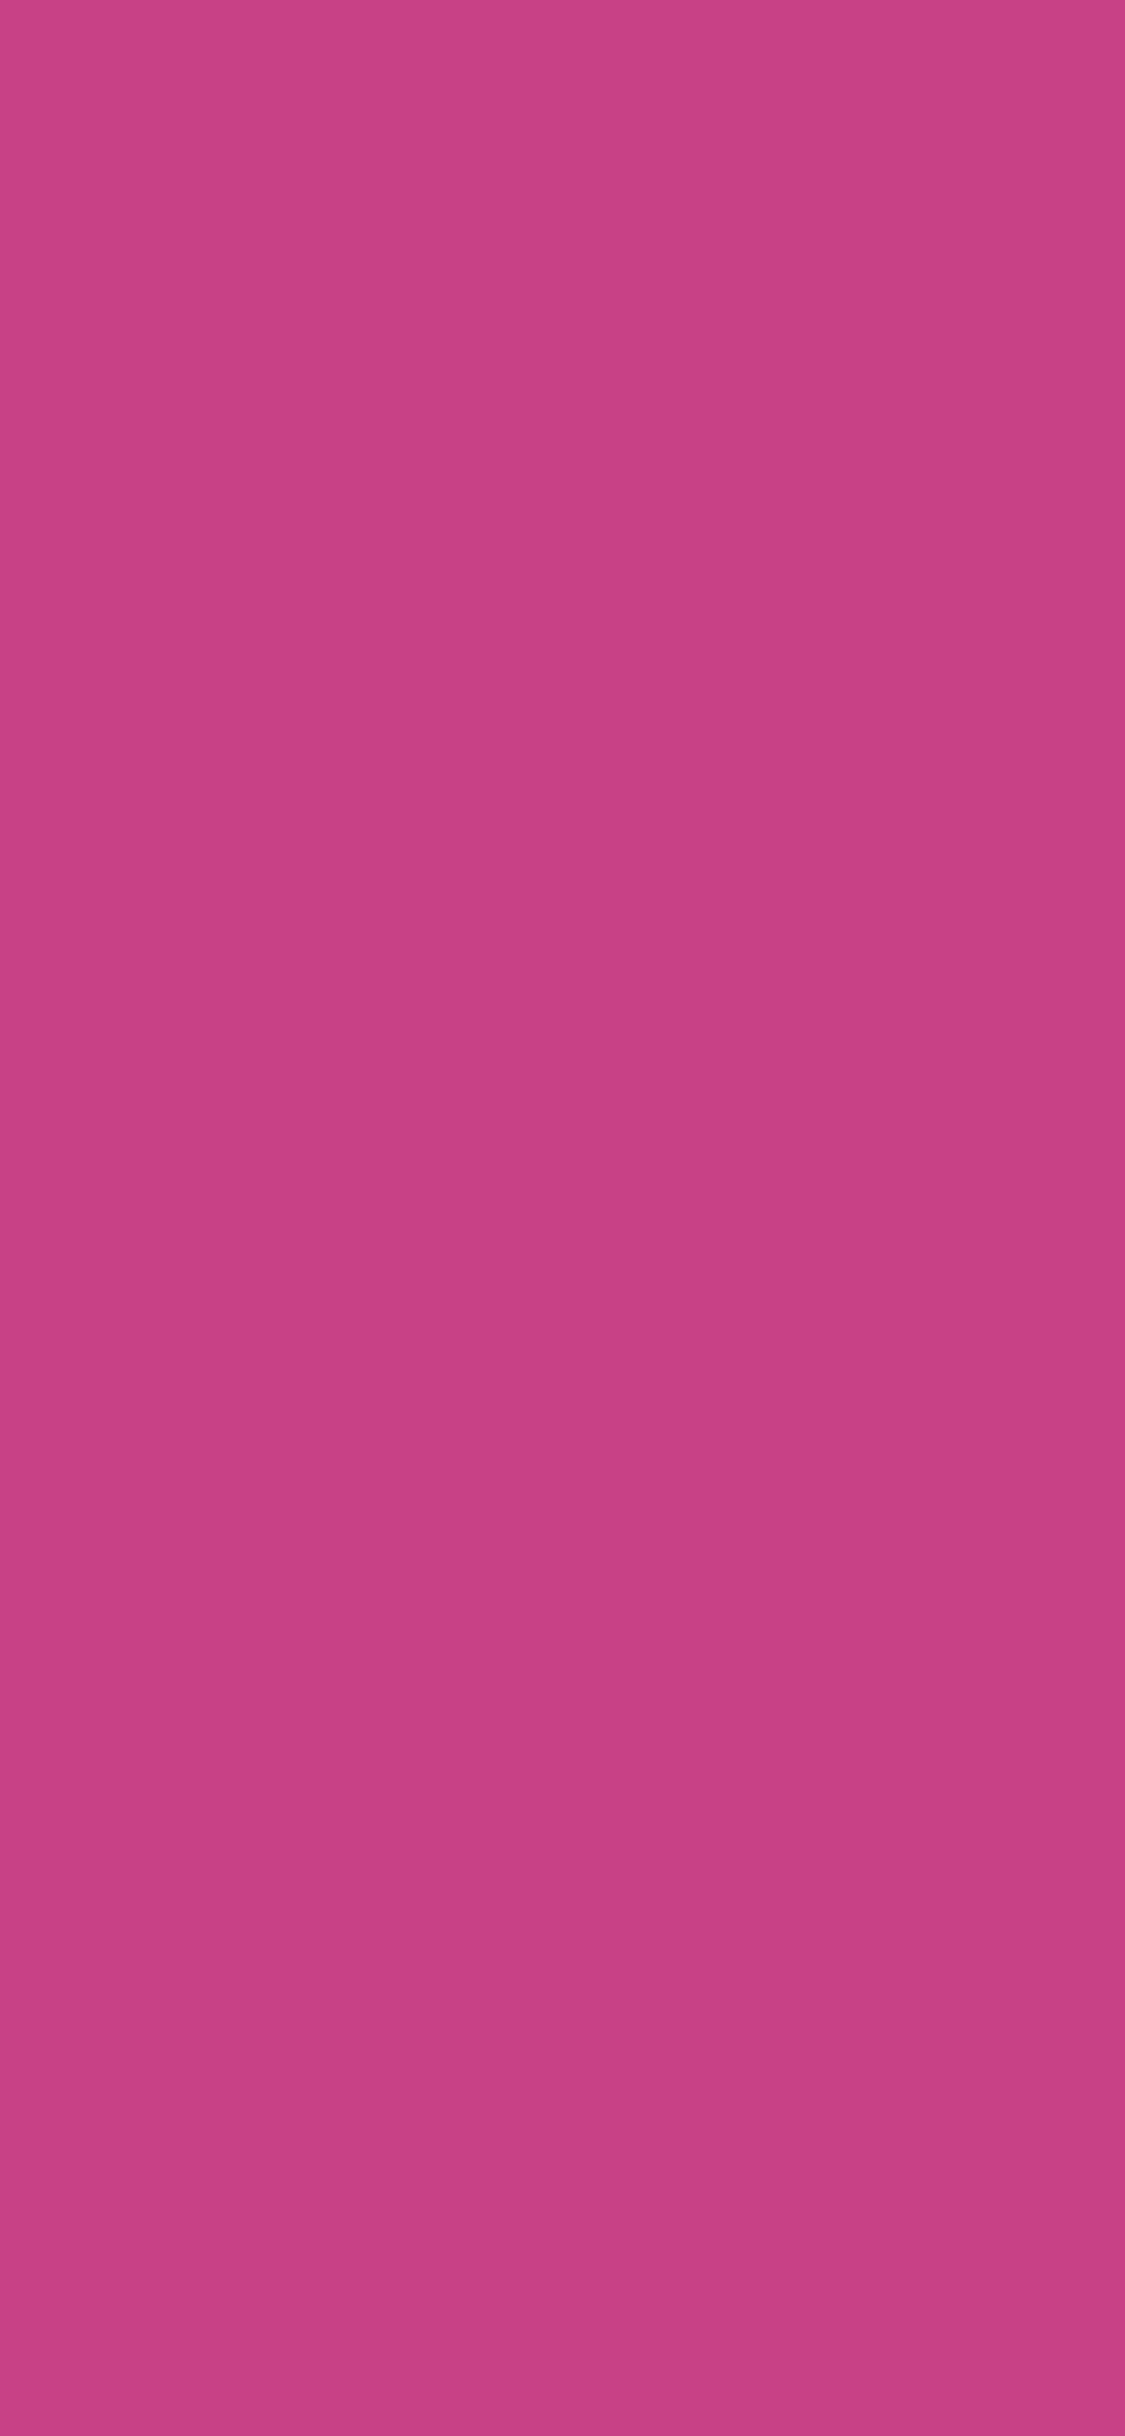 1125x2436 Smitten Solid Color Background